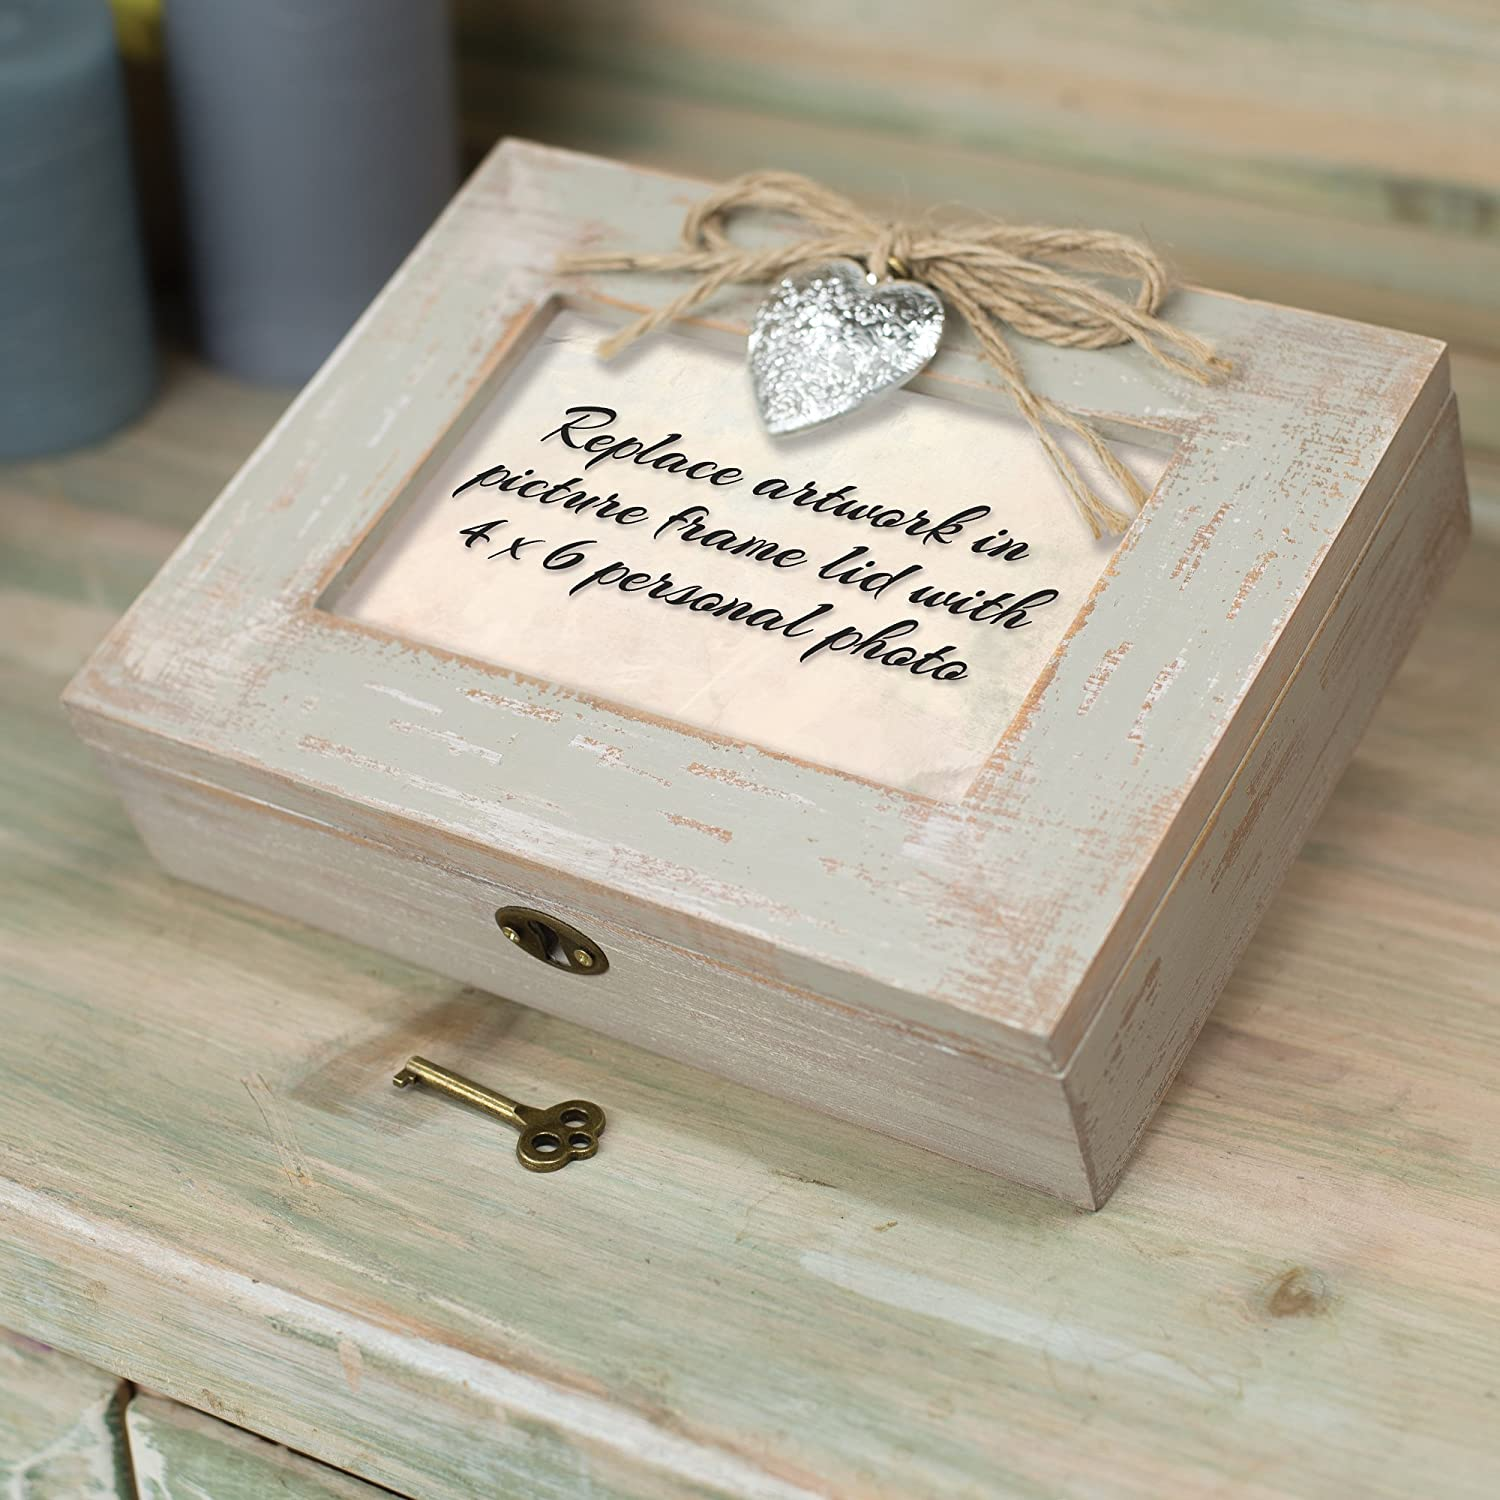 Cottage Garden Be Still /& Know That I am God Distressed Wood Locket Jewelry Music Box Plays Tune Amazing Grace